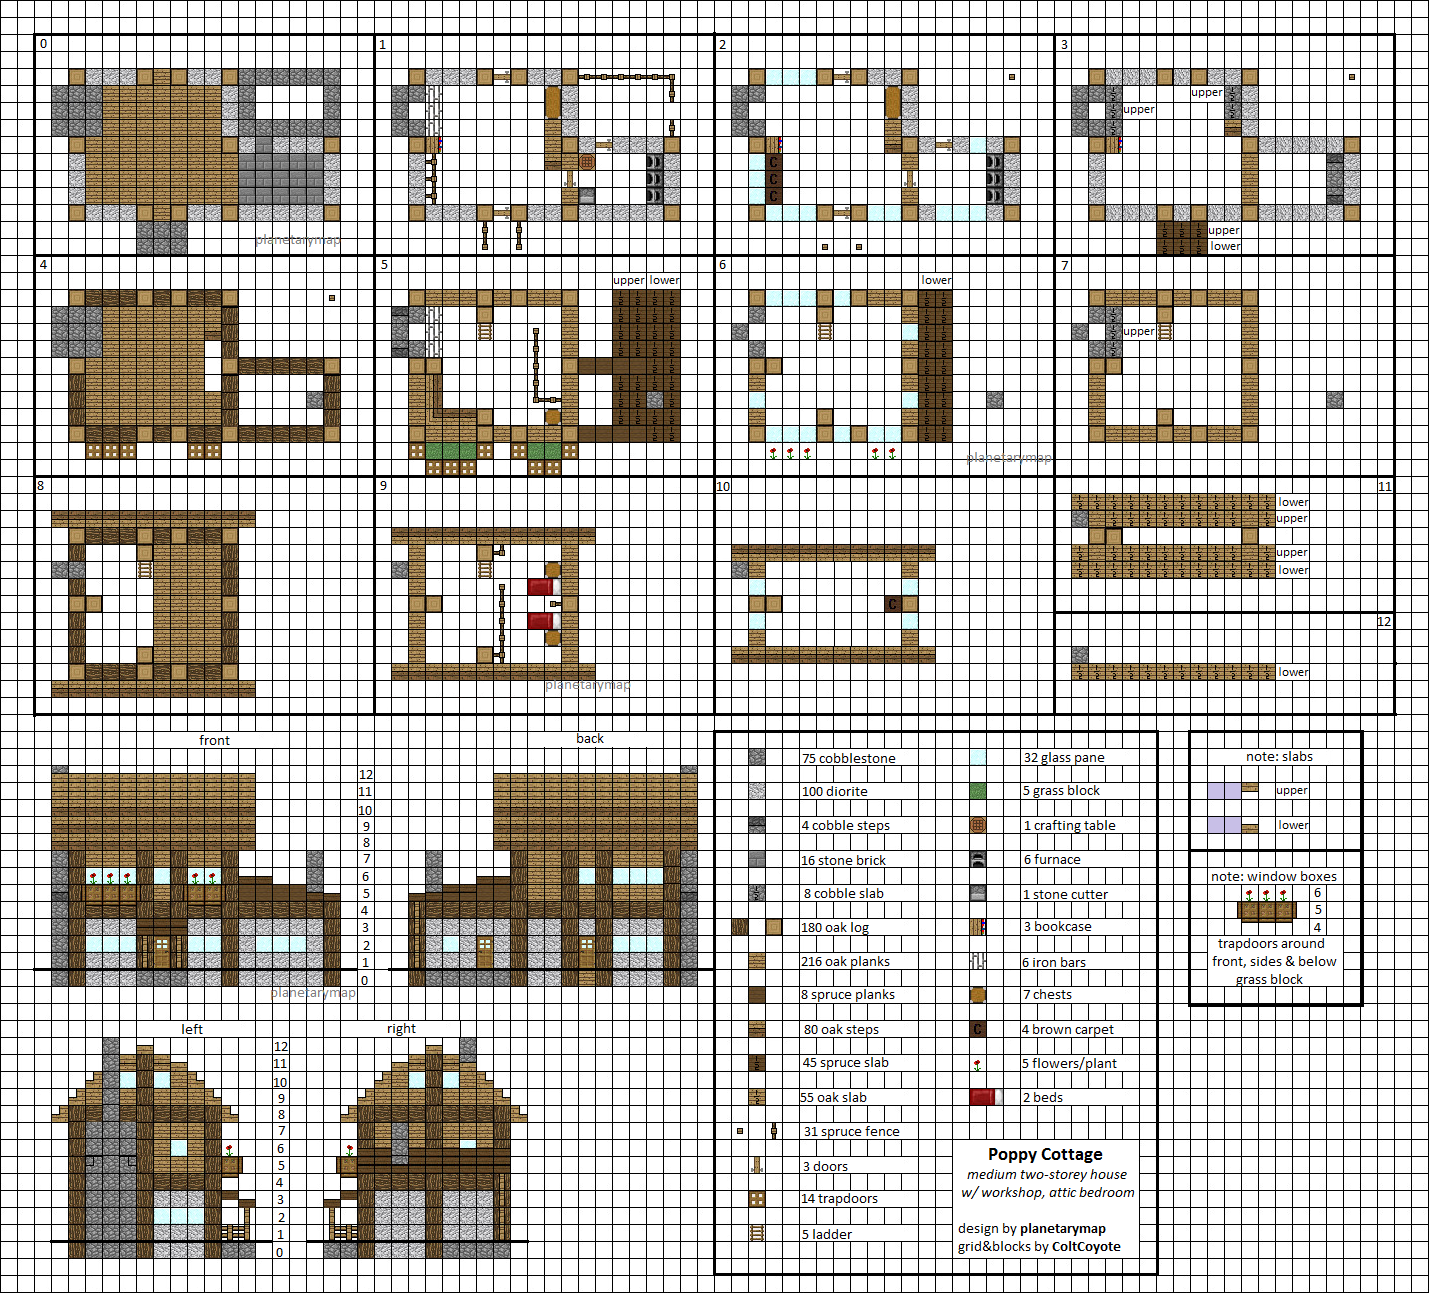 mansion minecraft houses blueprints